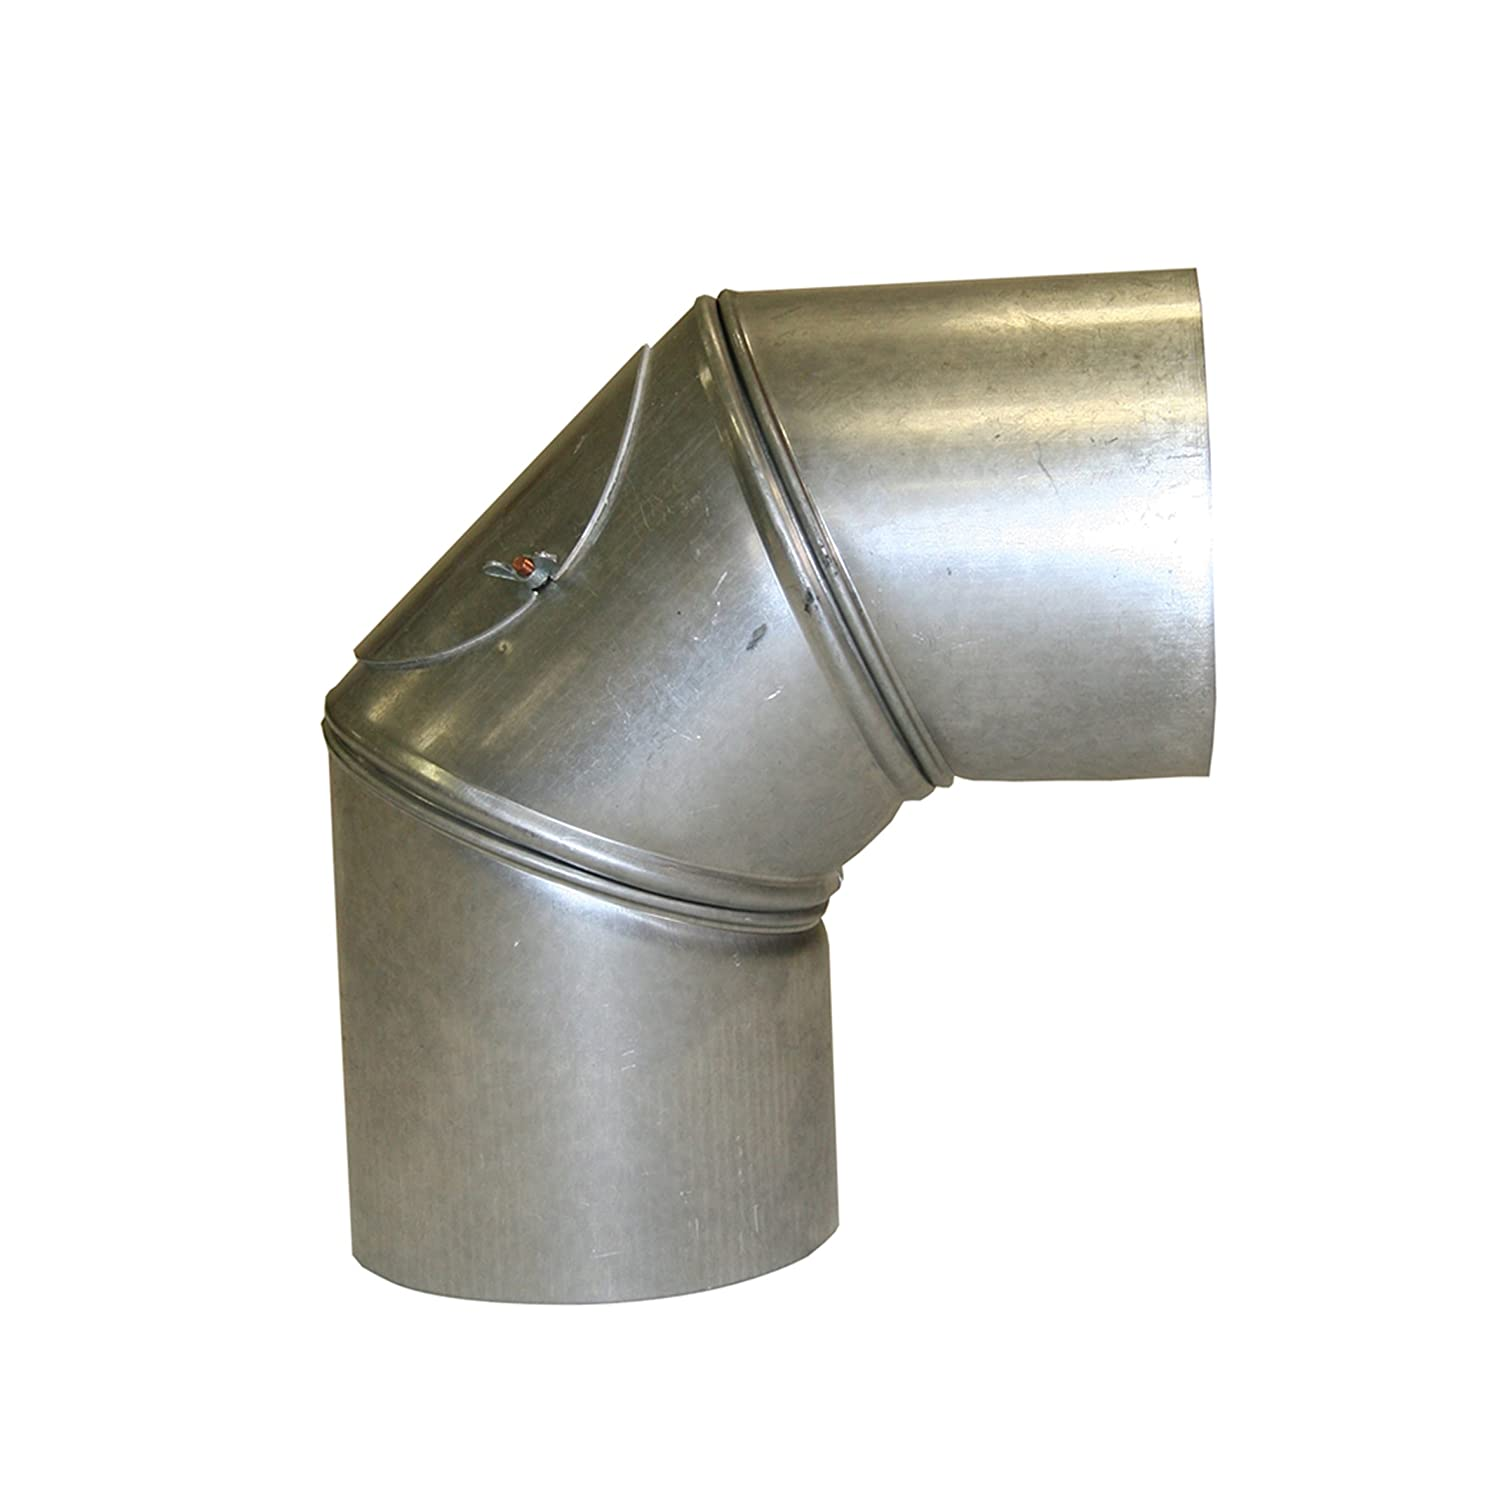 Kamino-Flam 90° Elbow Pipe with Door Ø 110mm, Hot-dip Aluminised (FAL) Steel Stove Pipe Elbow with Door, Heat Resistant Flue Elbow for Stoves, Elbow Chimney Pipe EN 1856-2 Standard, Silve Kamino - Flam 331235